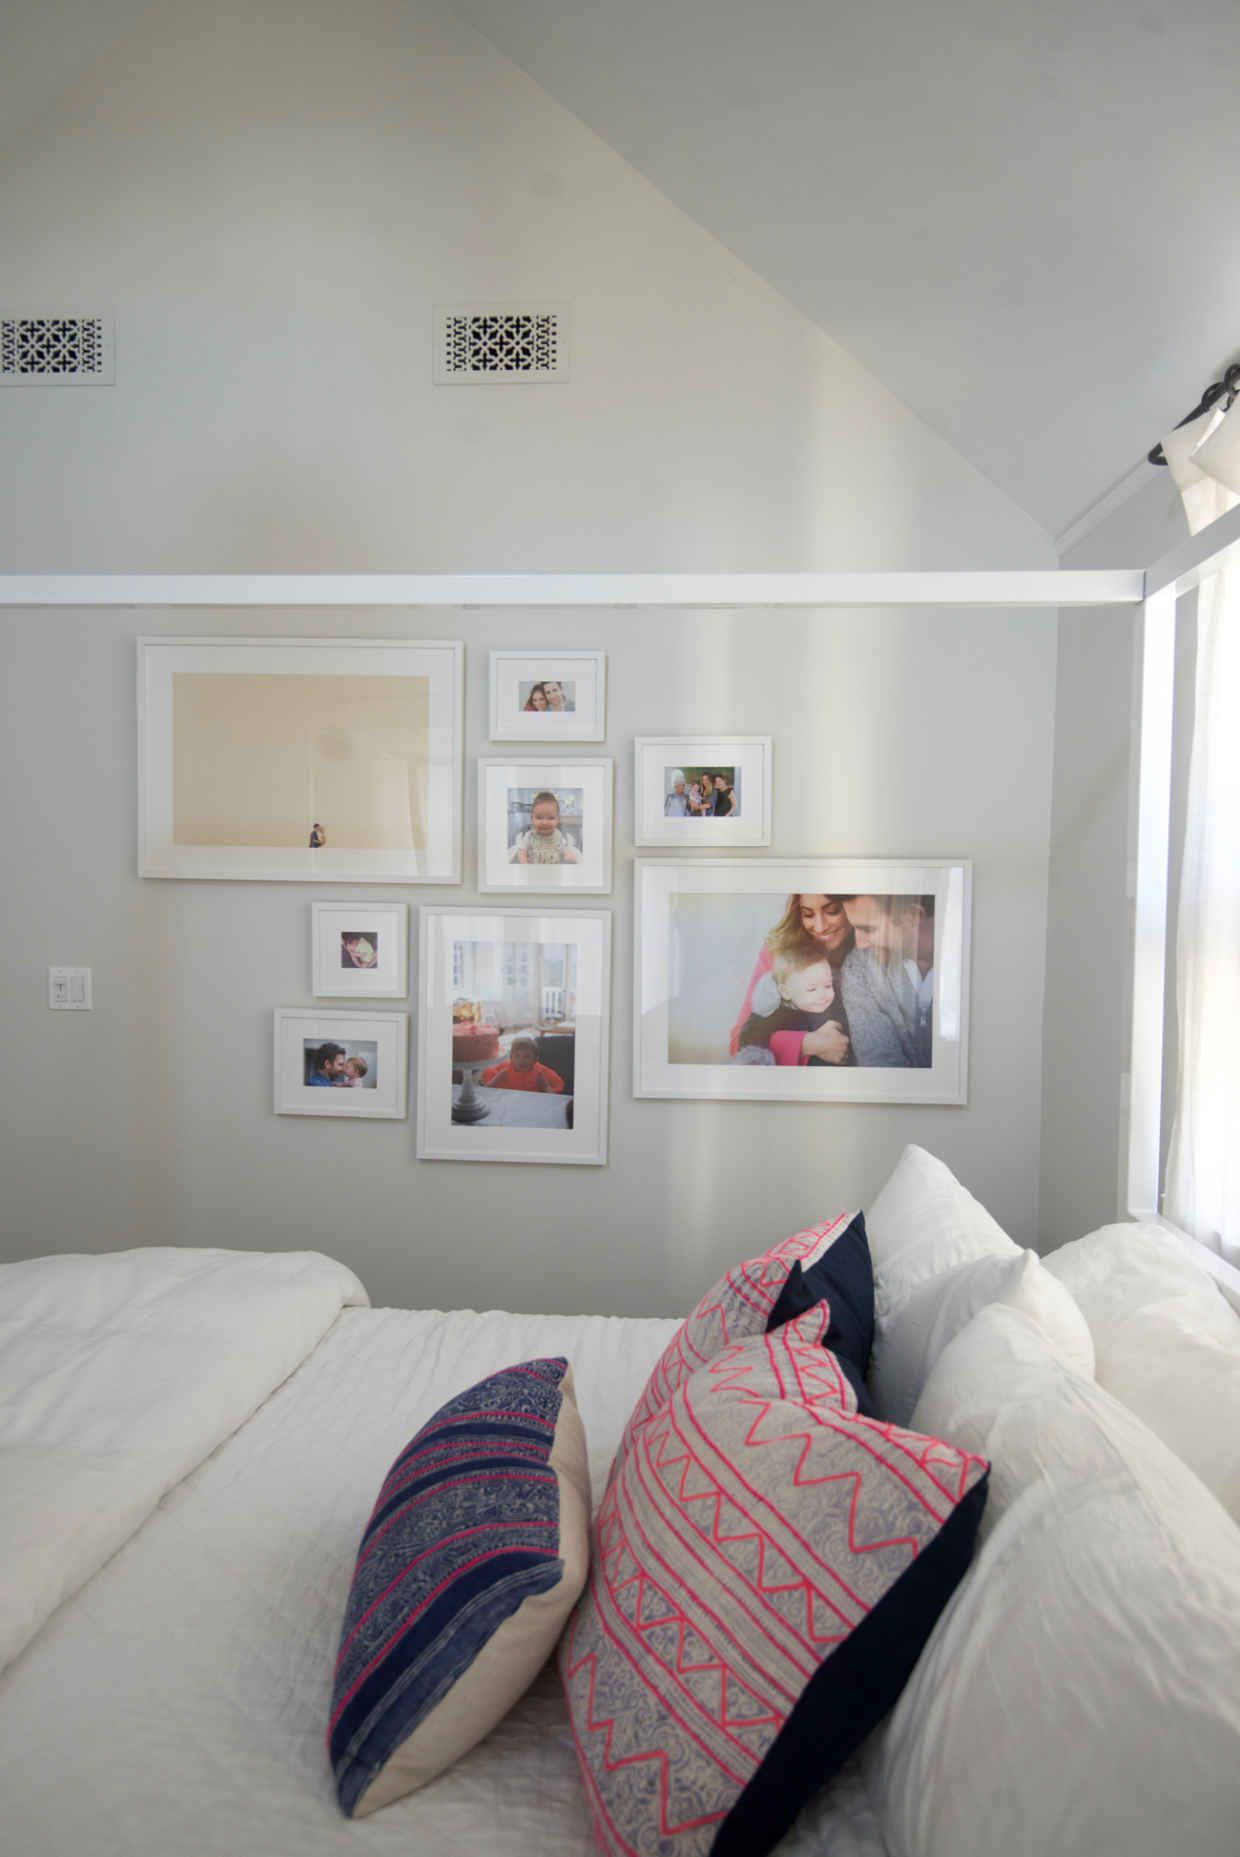 How to hang a gallery wall With